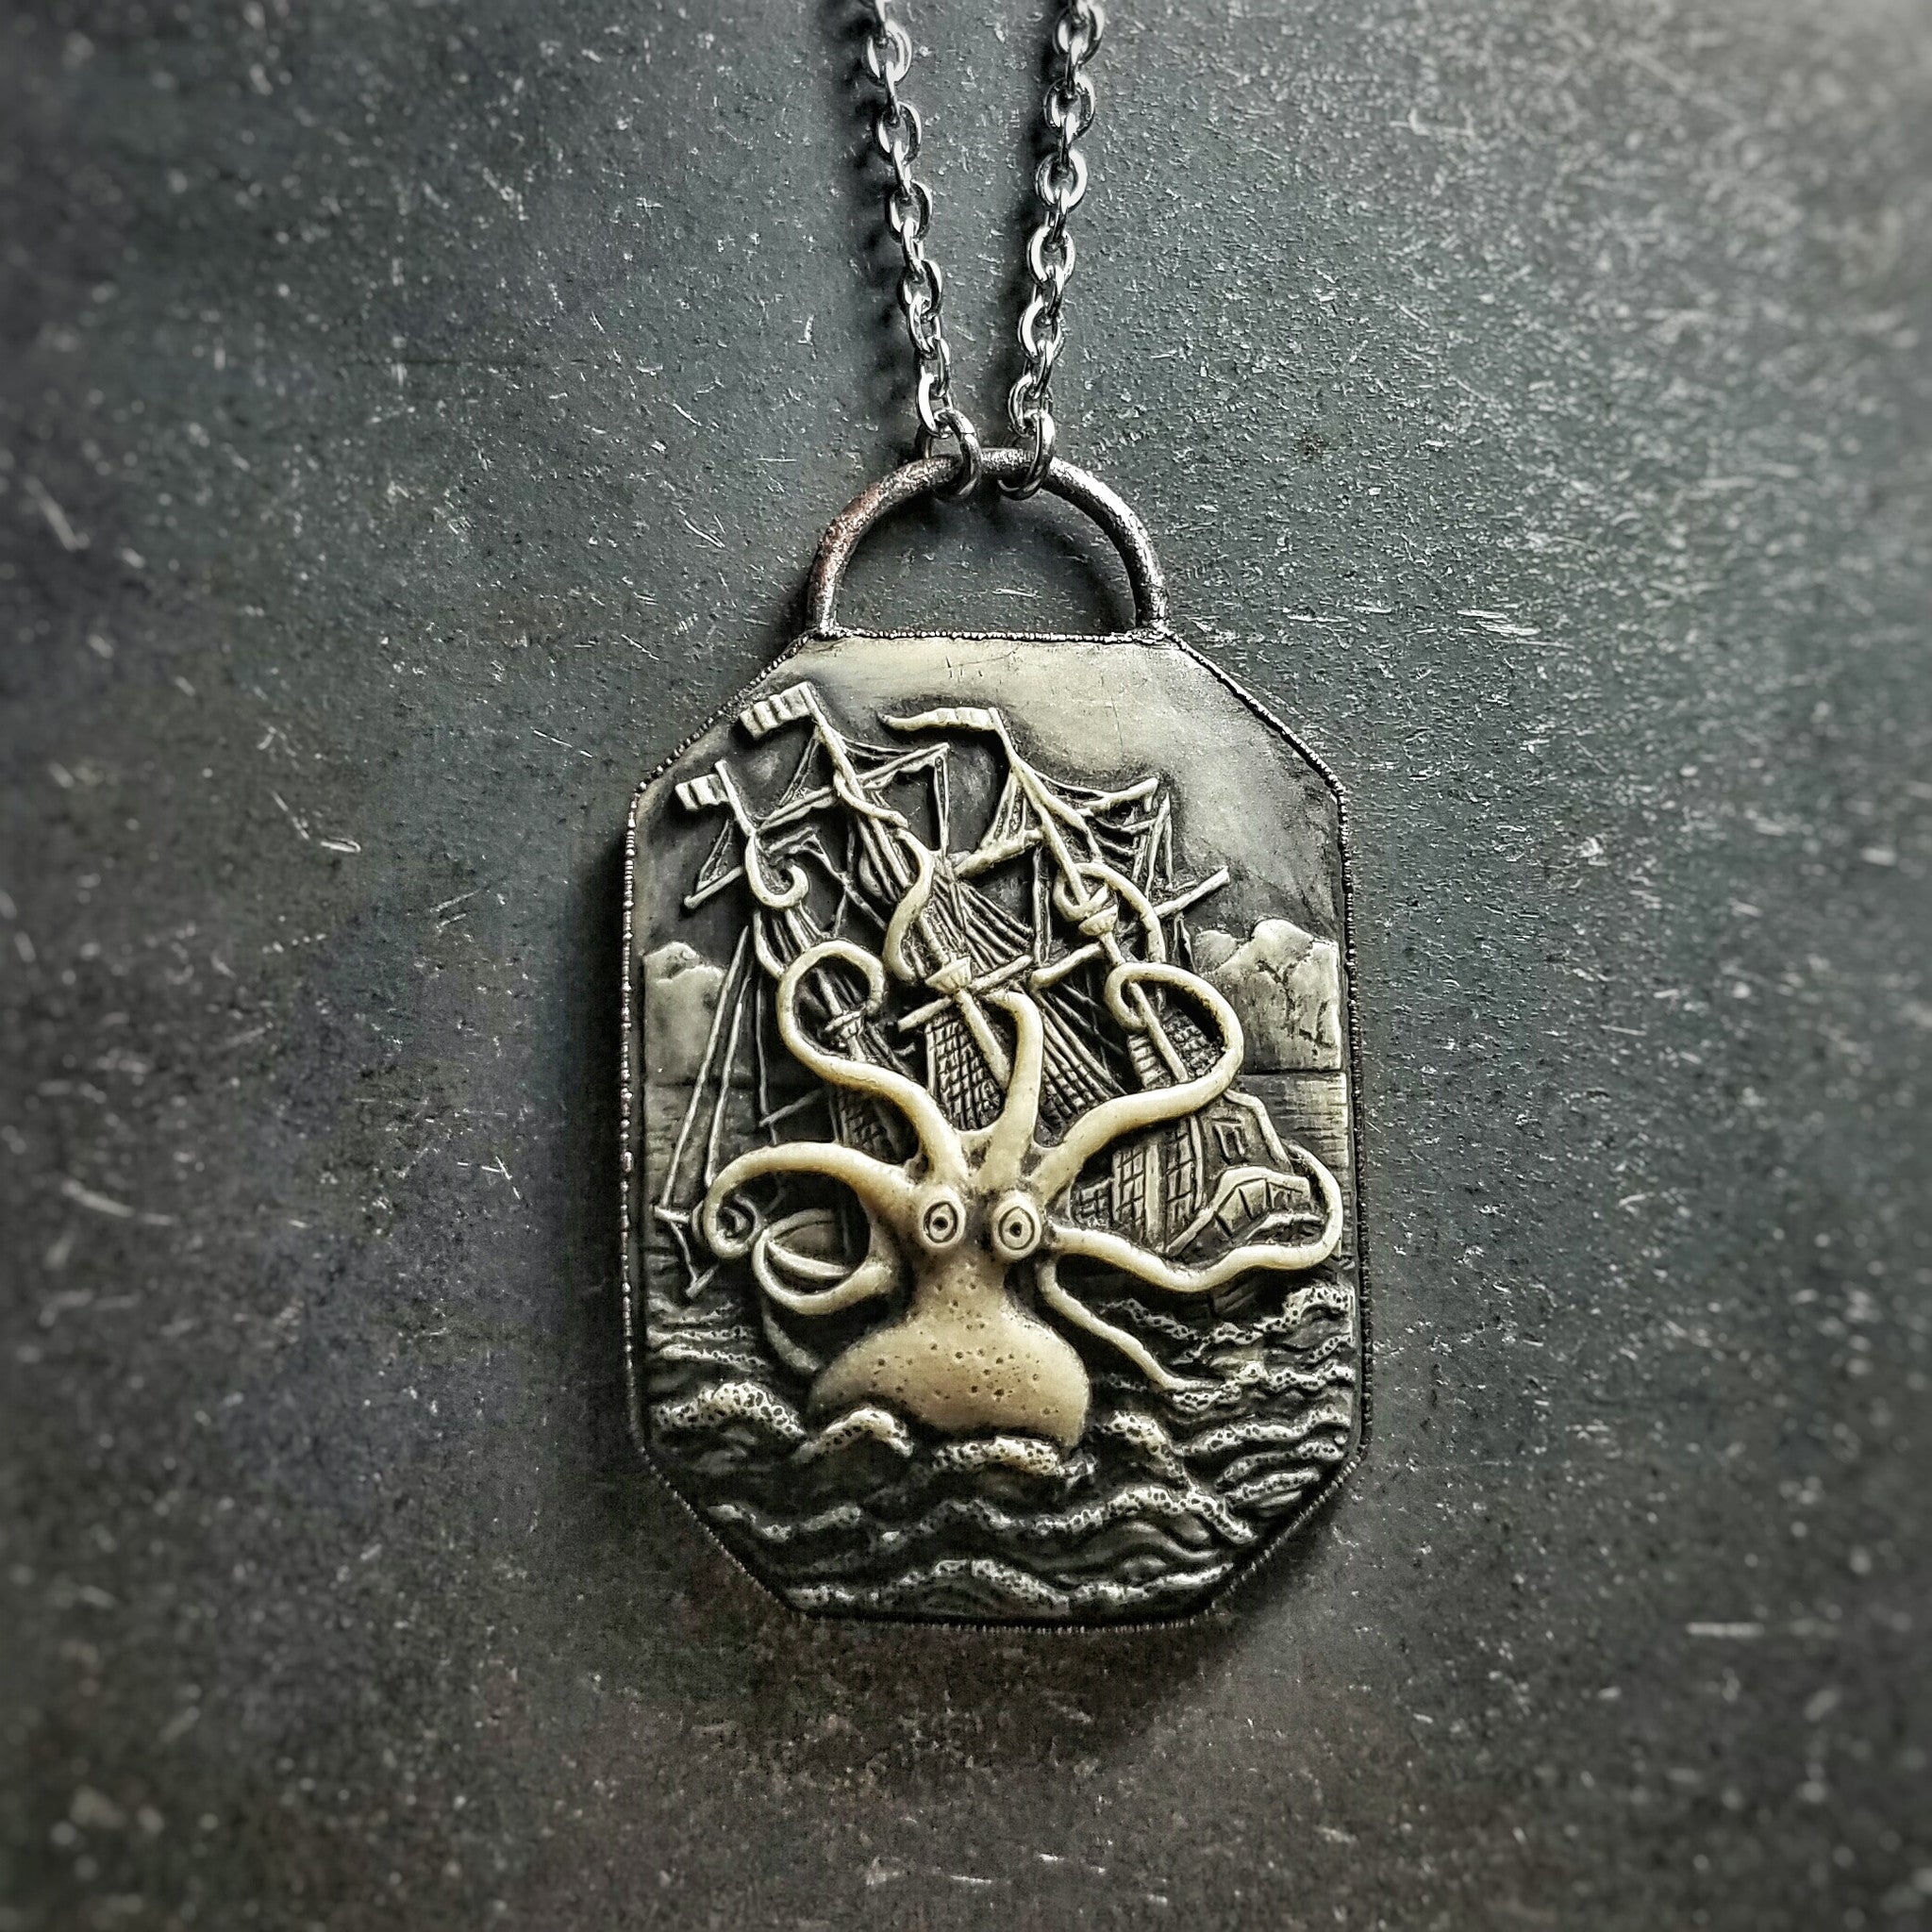 Kraken Cameo Necklace